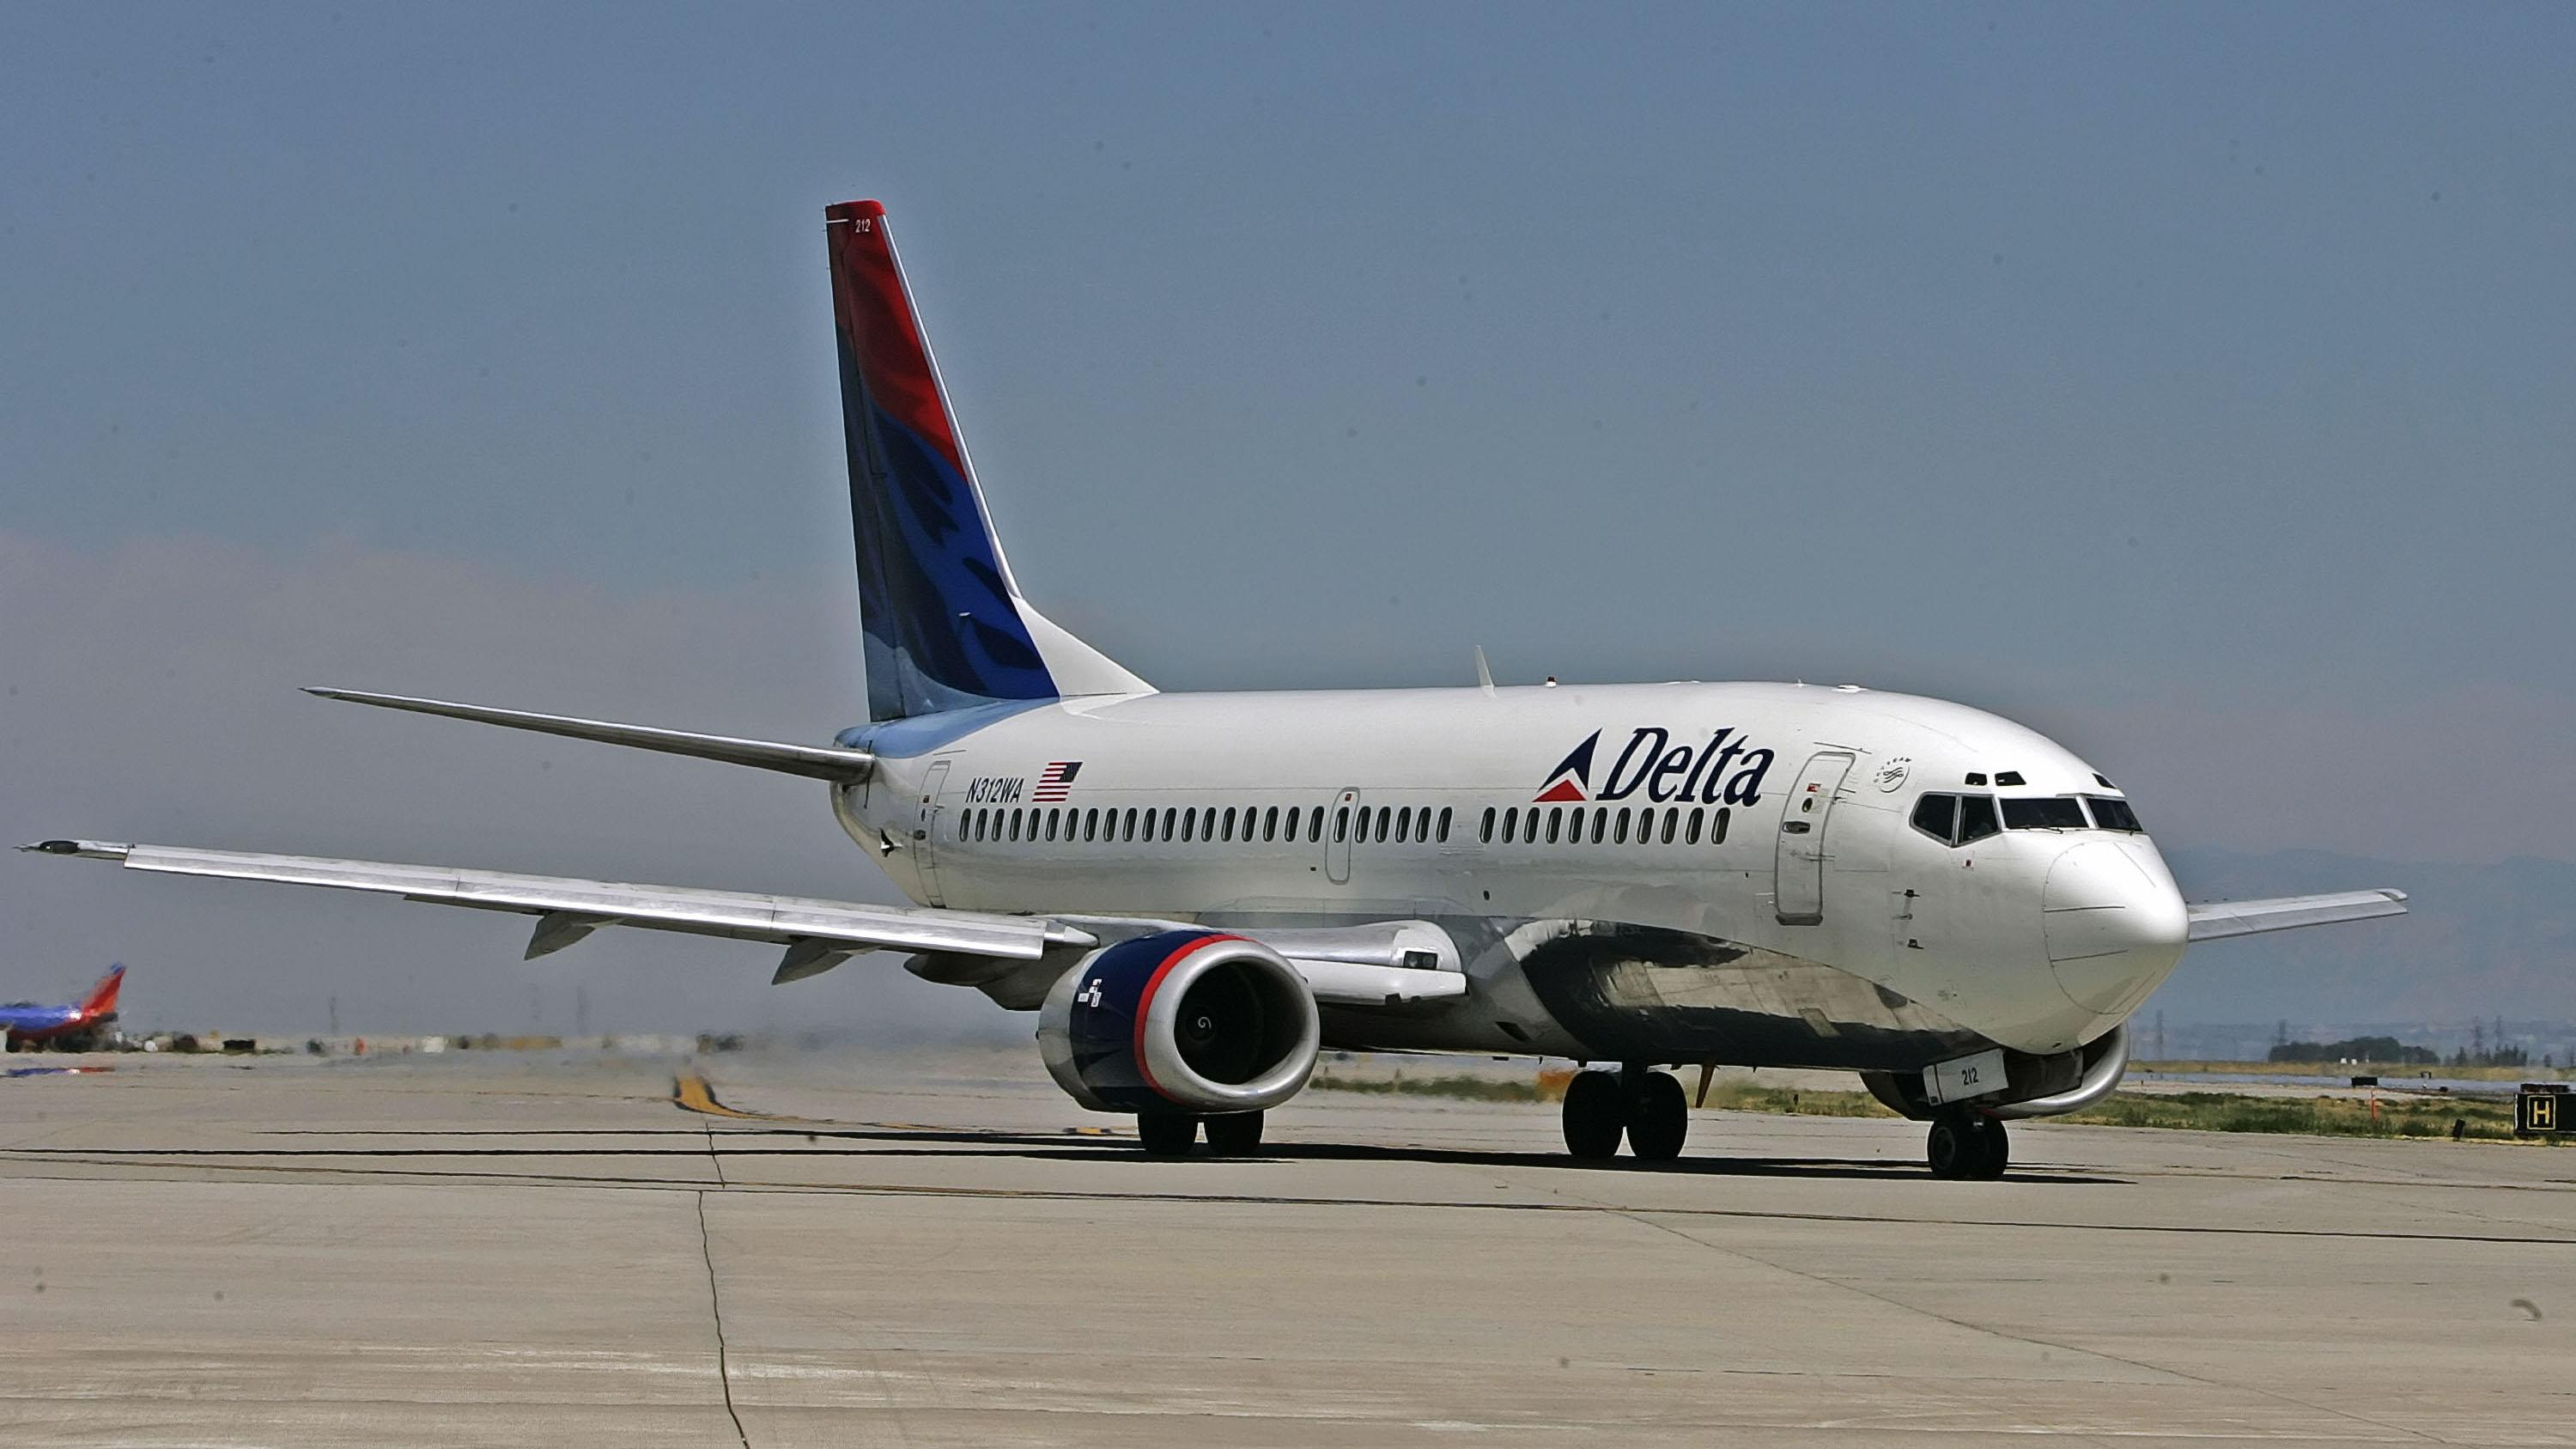 Woman fined $500 for snack taken from Delta flight